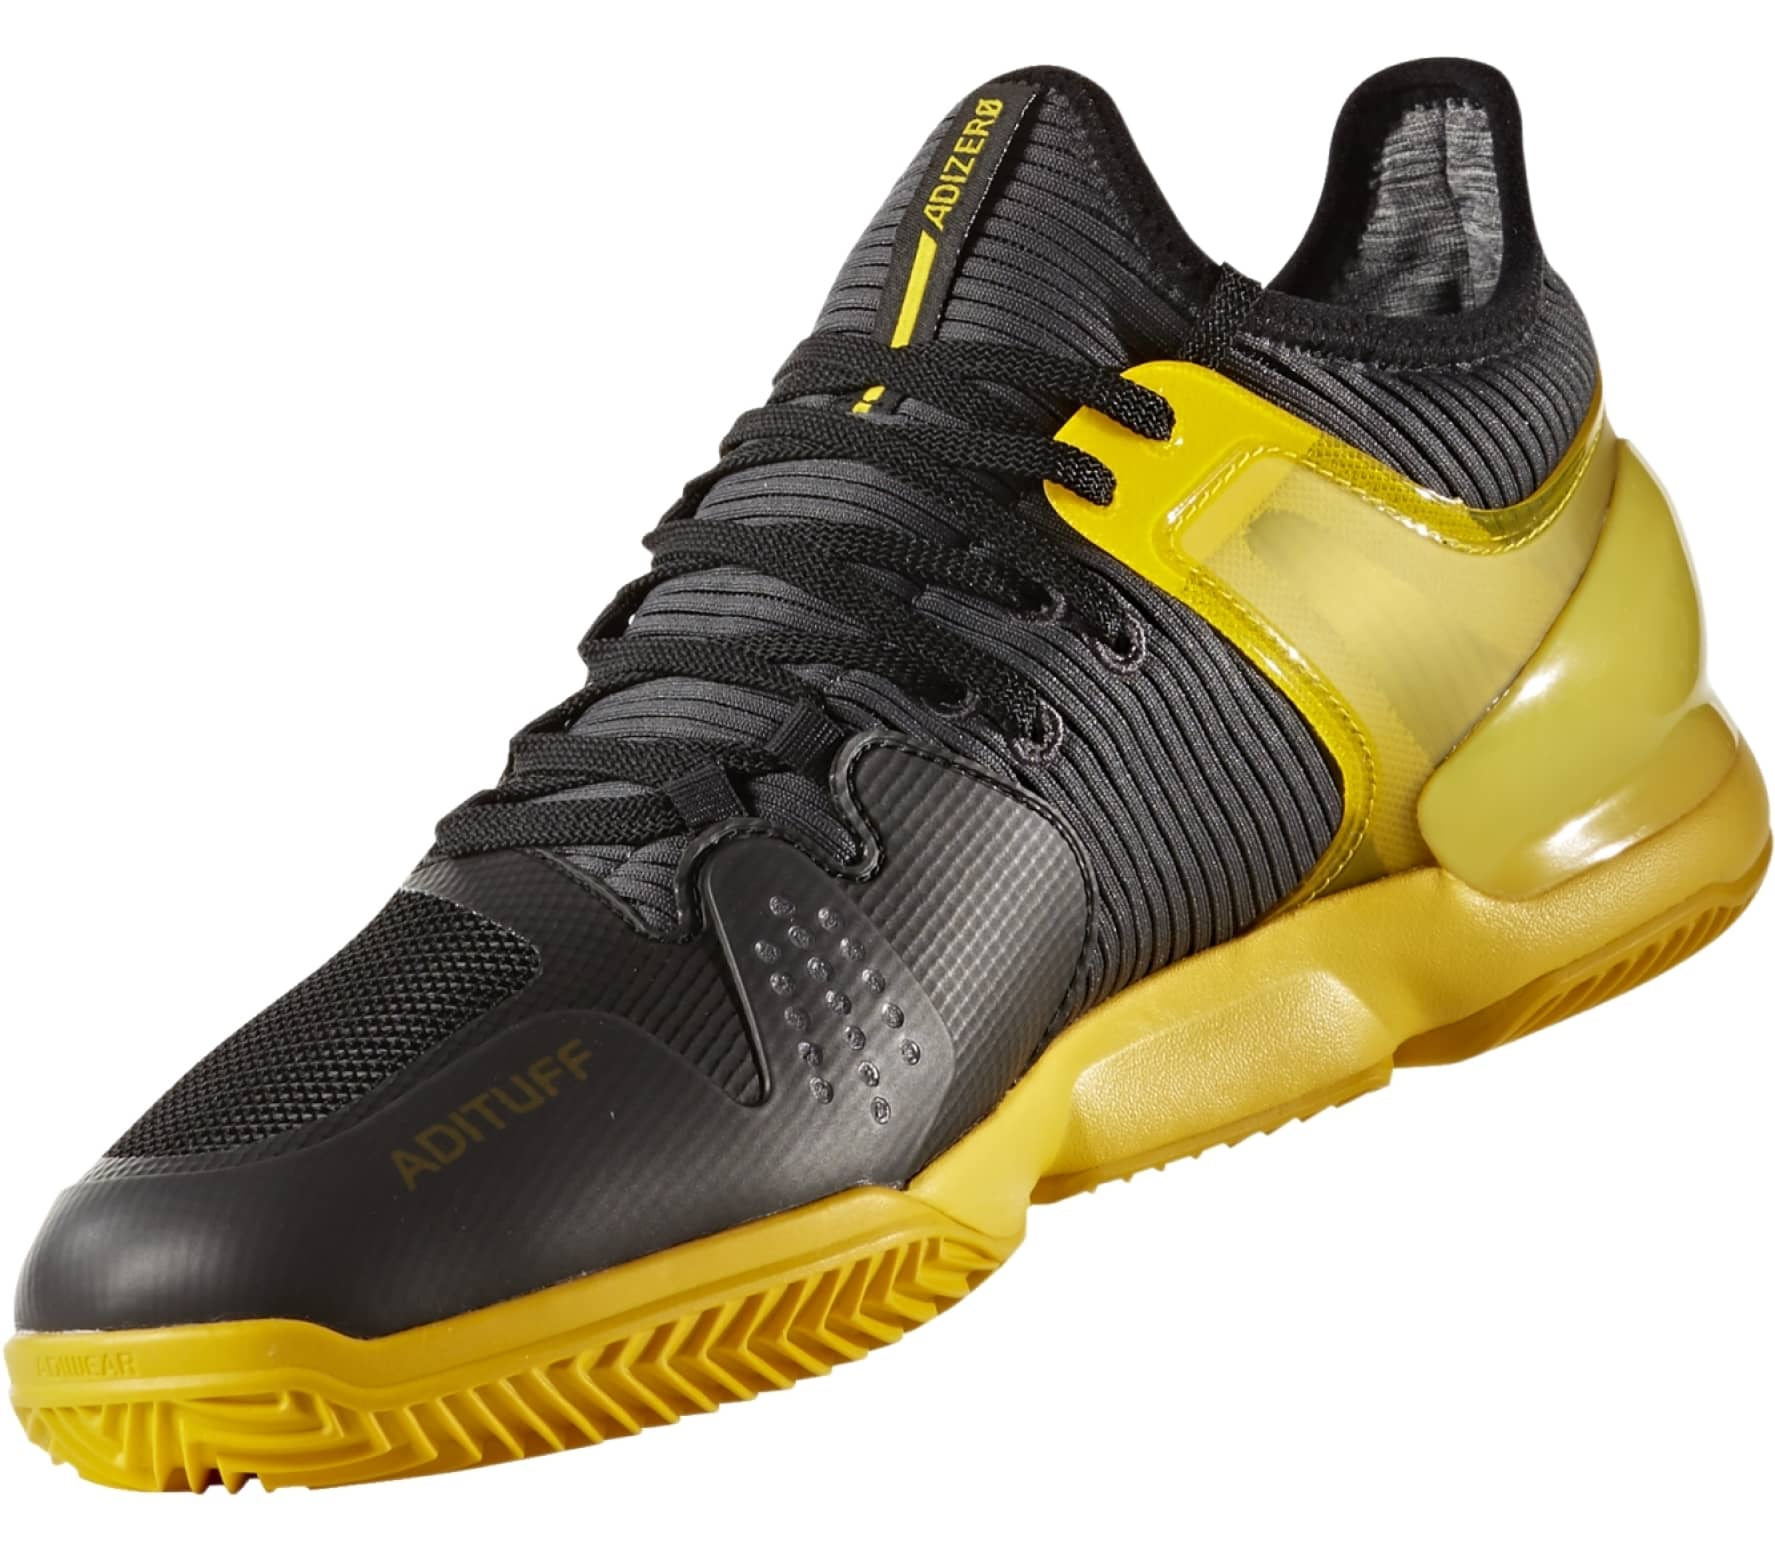 sports shoes 00233 8f4f7 Adidas - Adizero Ubersonic 2 Clay scarpe tennis da uomo (nerogiallo)